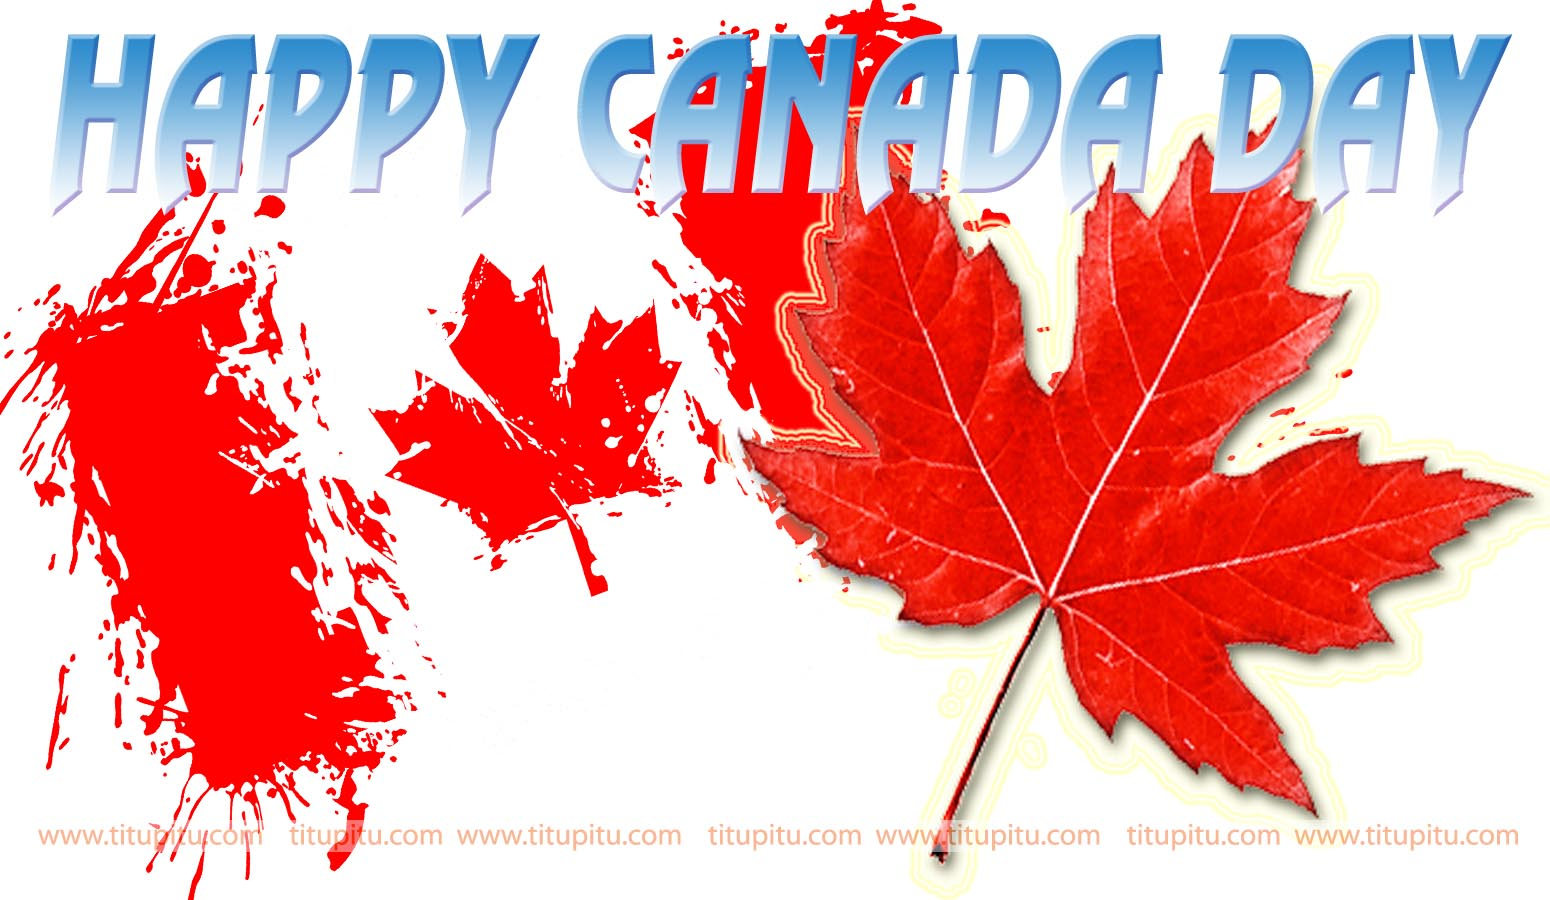 Happy canada day funny pictures top funny happy canada day quotes happy canada day funny pictures wallpaper quotes and wishes of canada day haryanvi m4hsunfo